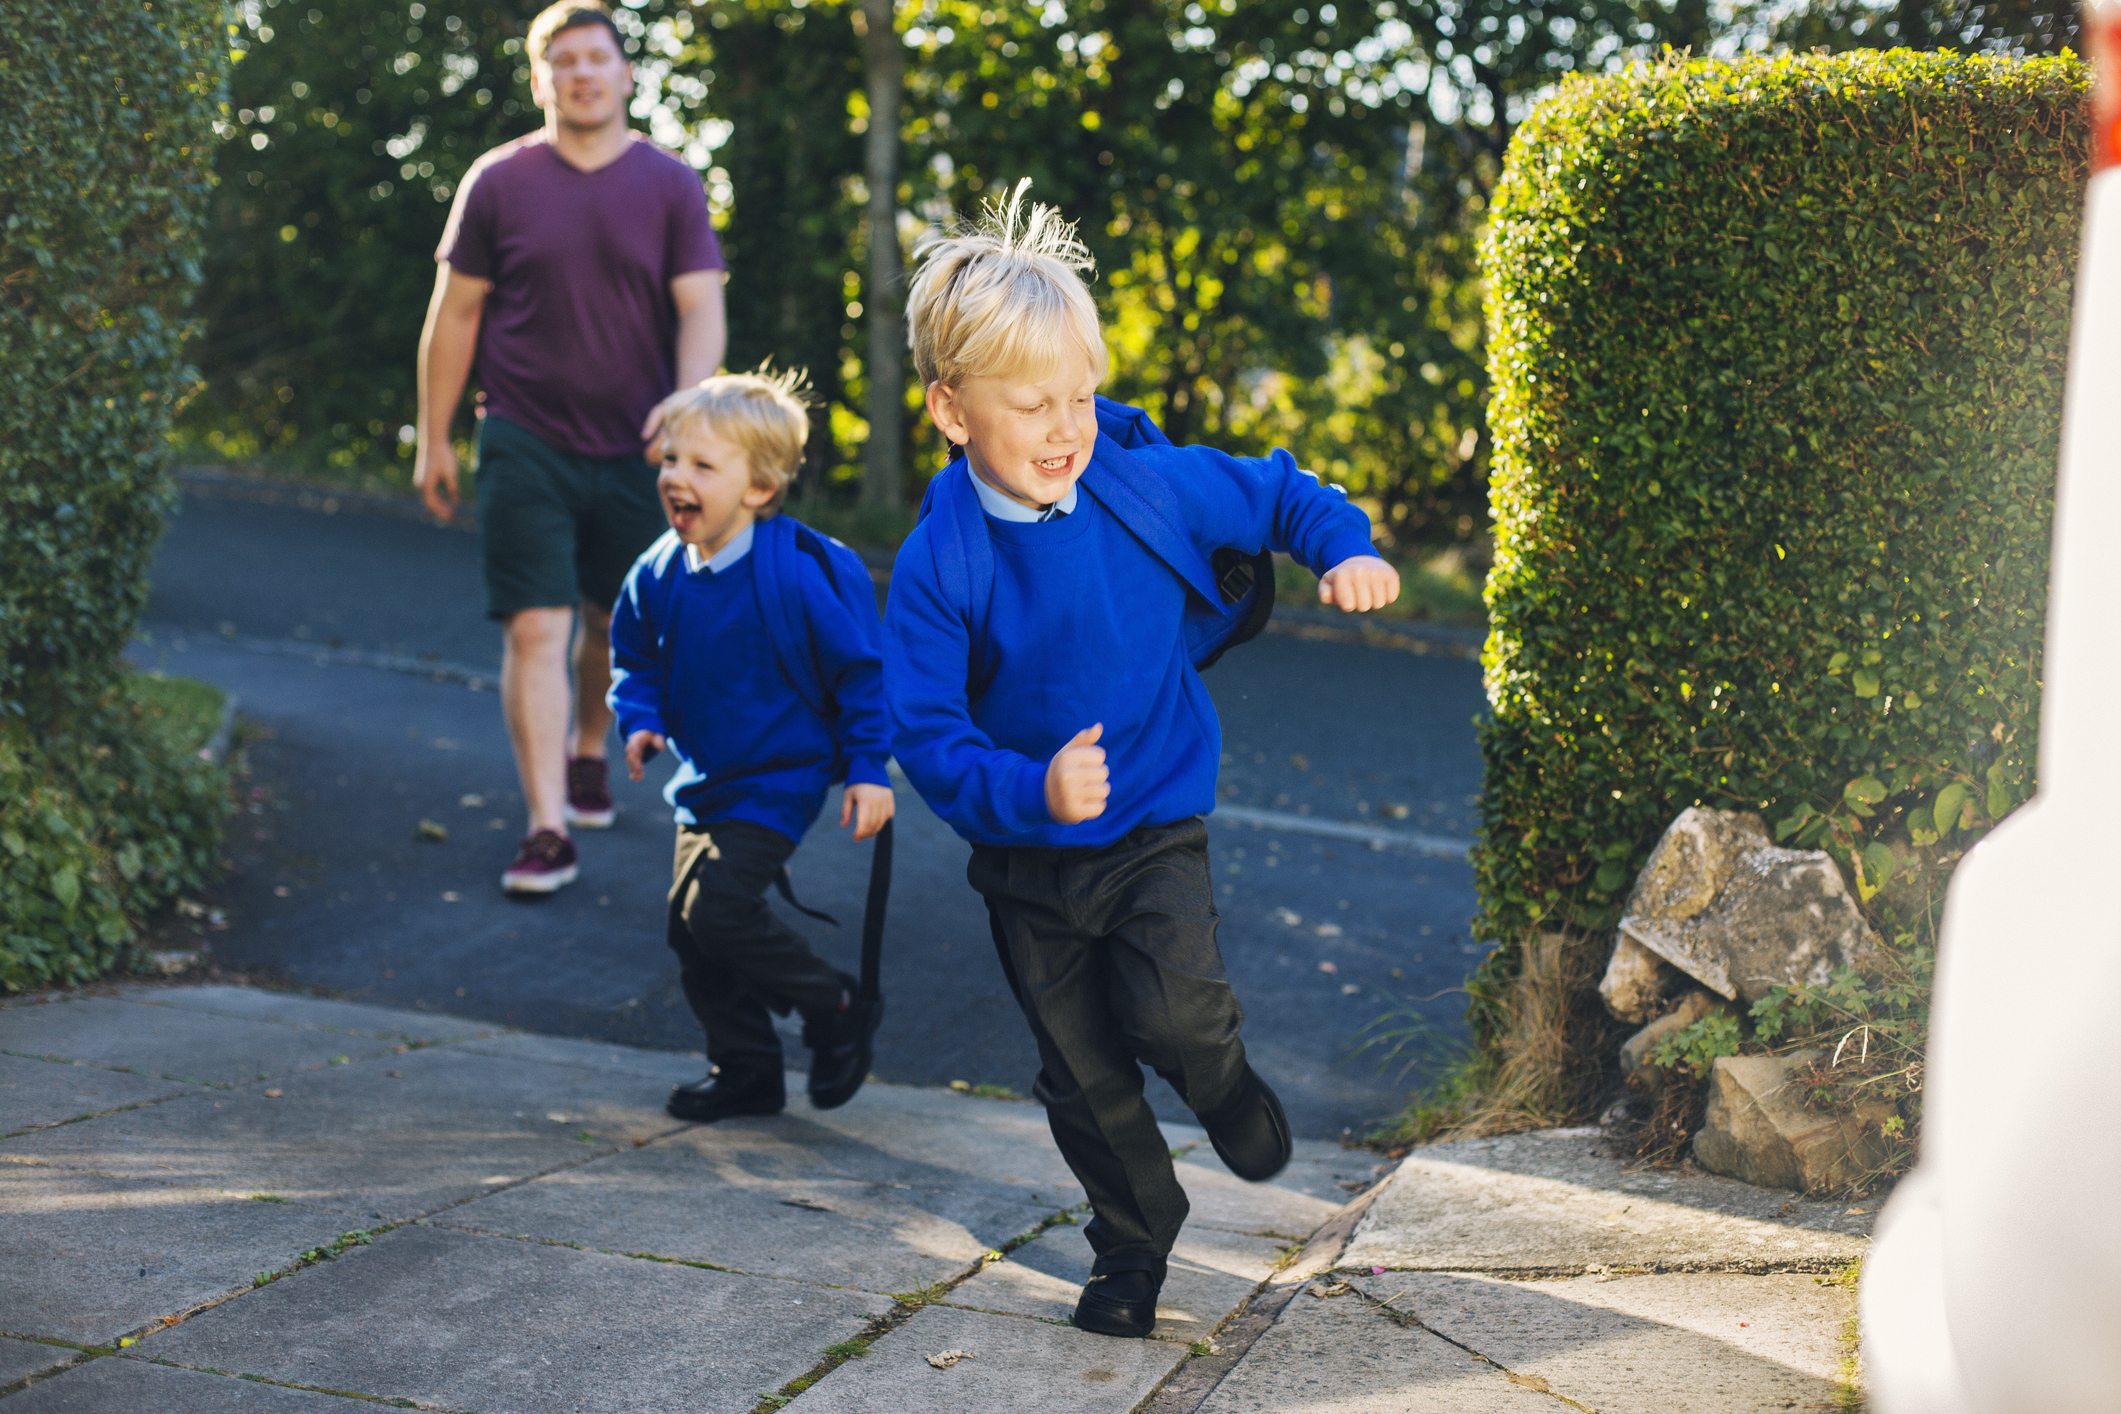 When do schools go back? New school year is starting soon as summer holidays come to an end